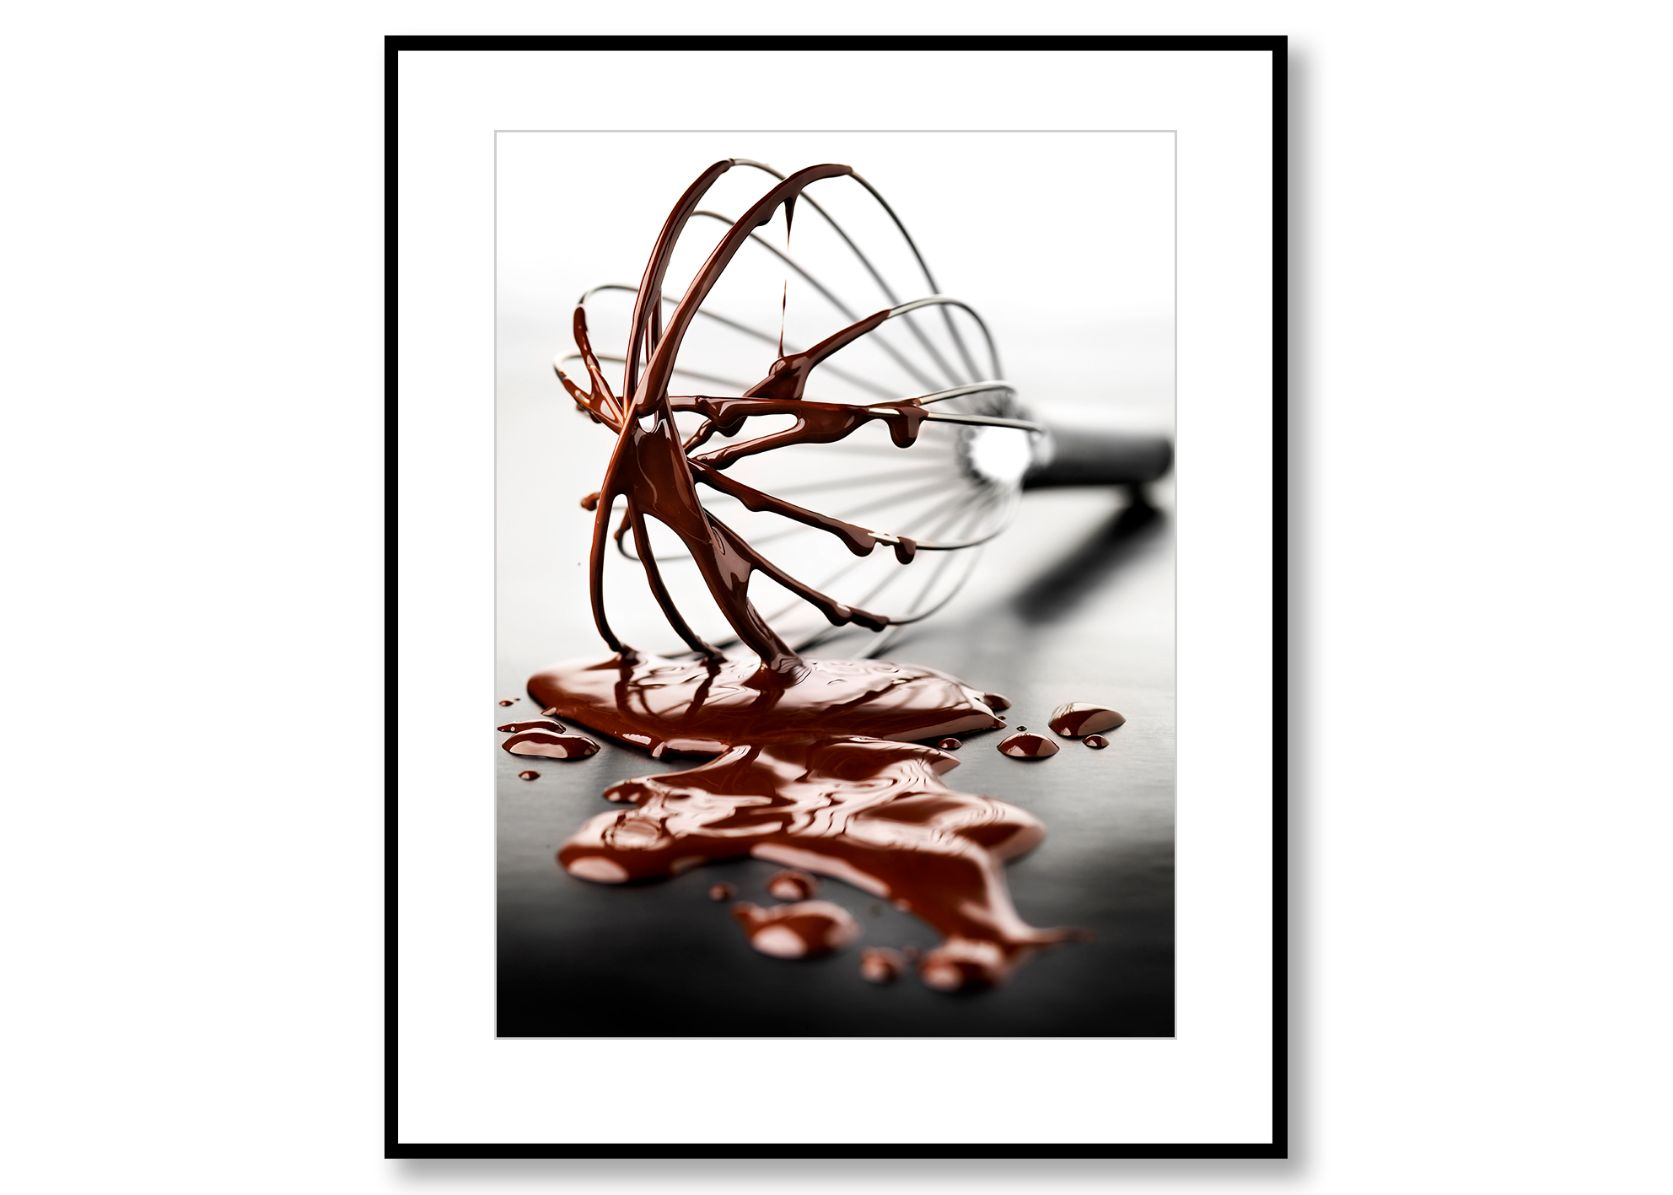 Chocolate, Food Art, Prints for sale. Photo by Fredrik Rege